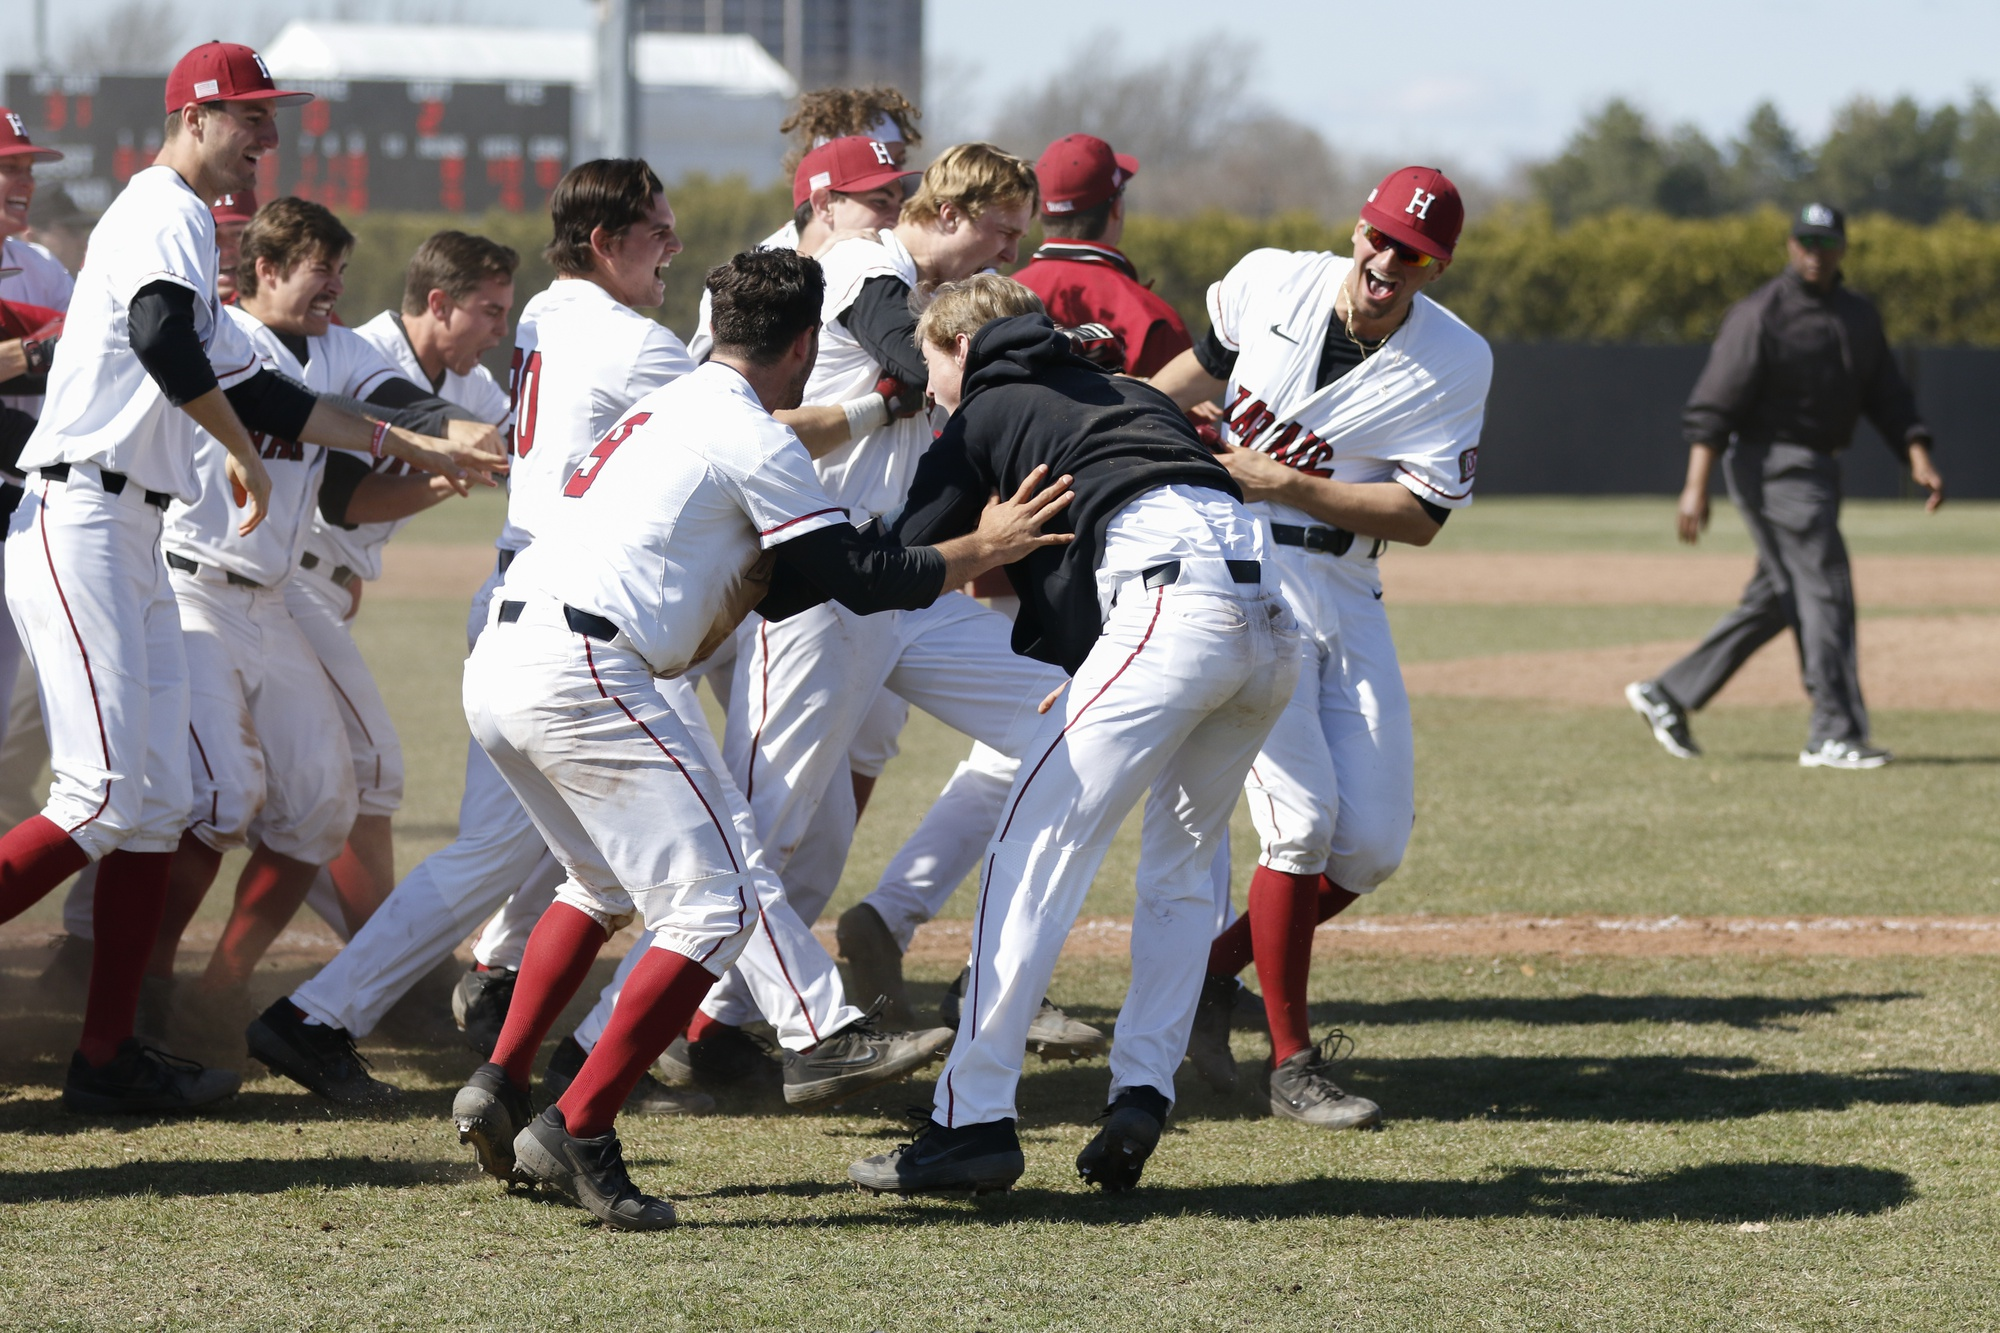 The team embraces McColl after the miraculous finish to the ballgame. Harvard would go on to win the second game of the doubleheader, but fell on Sunday in its sweep bid.